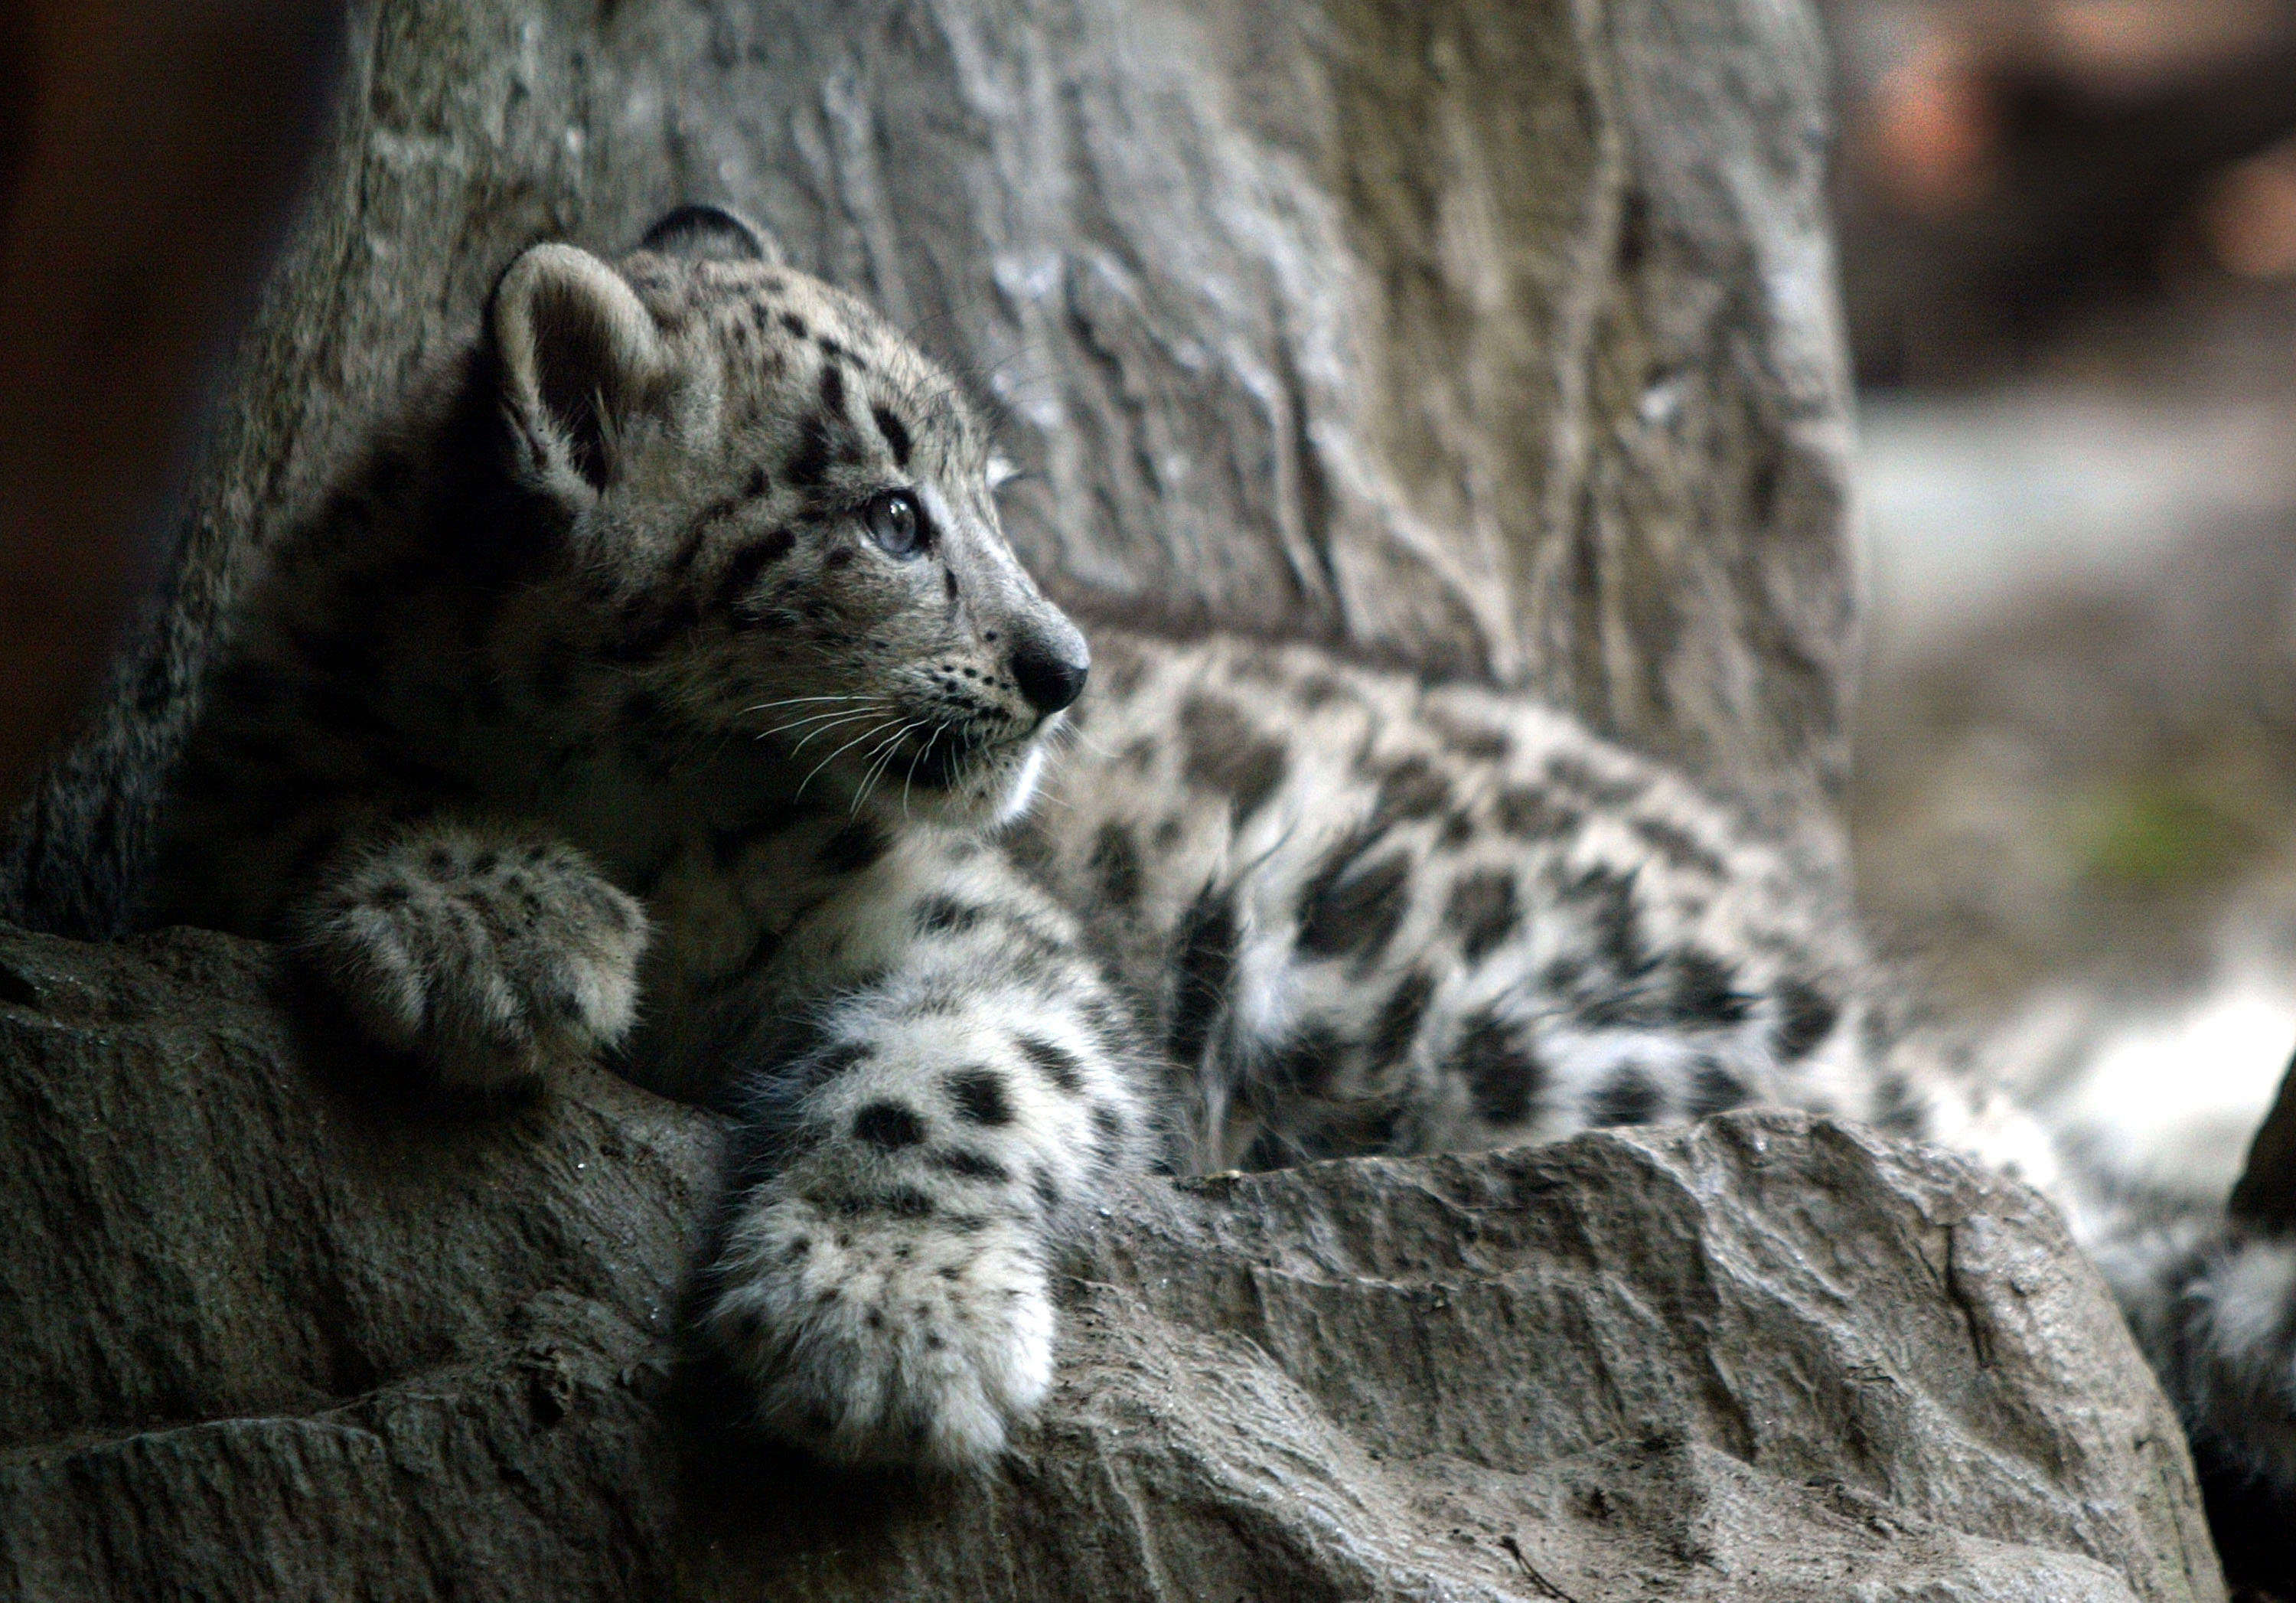 Baby Snow Leopards Sleeping Images & Pictures - Becuo